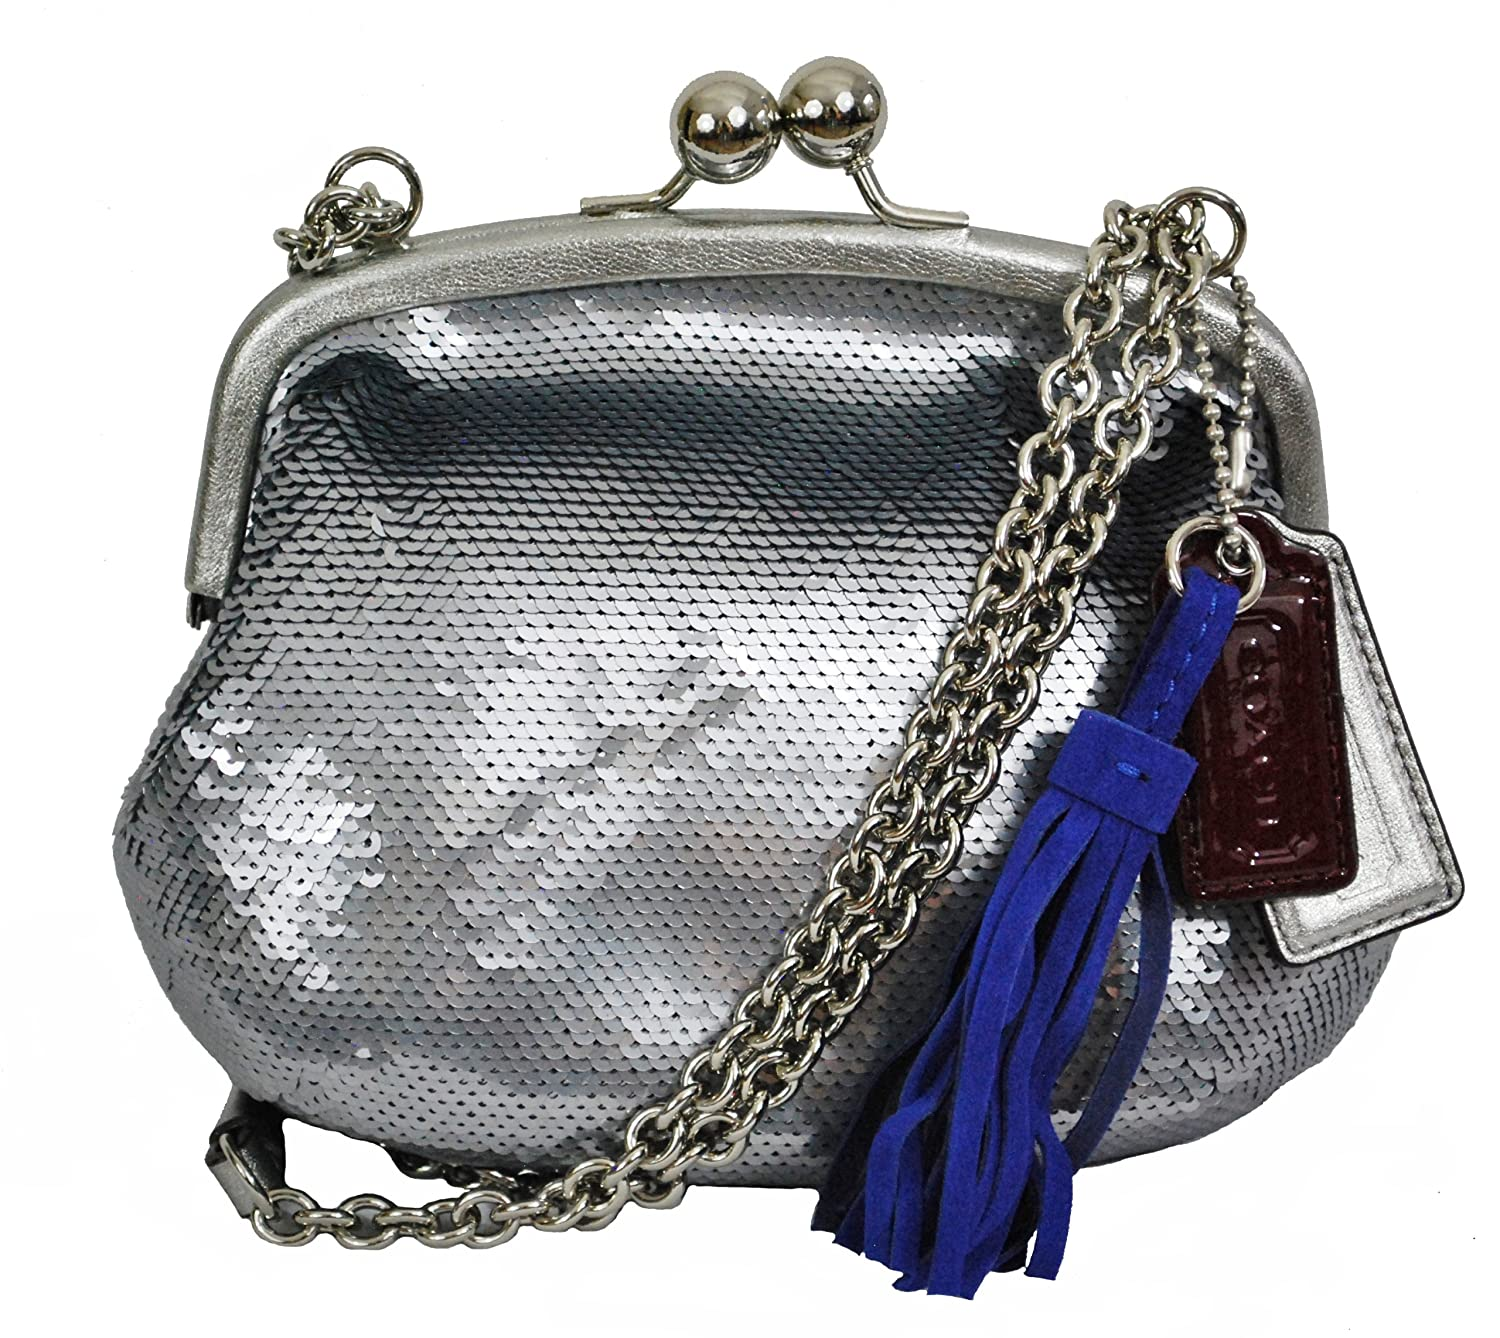 Coach 21218 Poppy Small Silver Pewter Sequin Evening Handbag Kelsey Black Gha Handbags Amazoncom